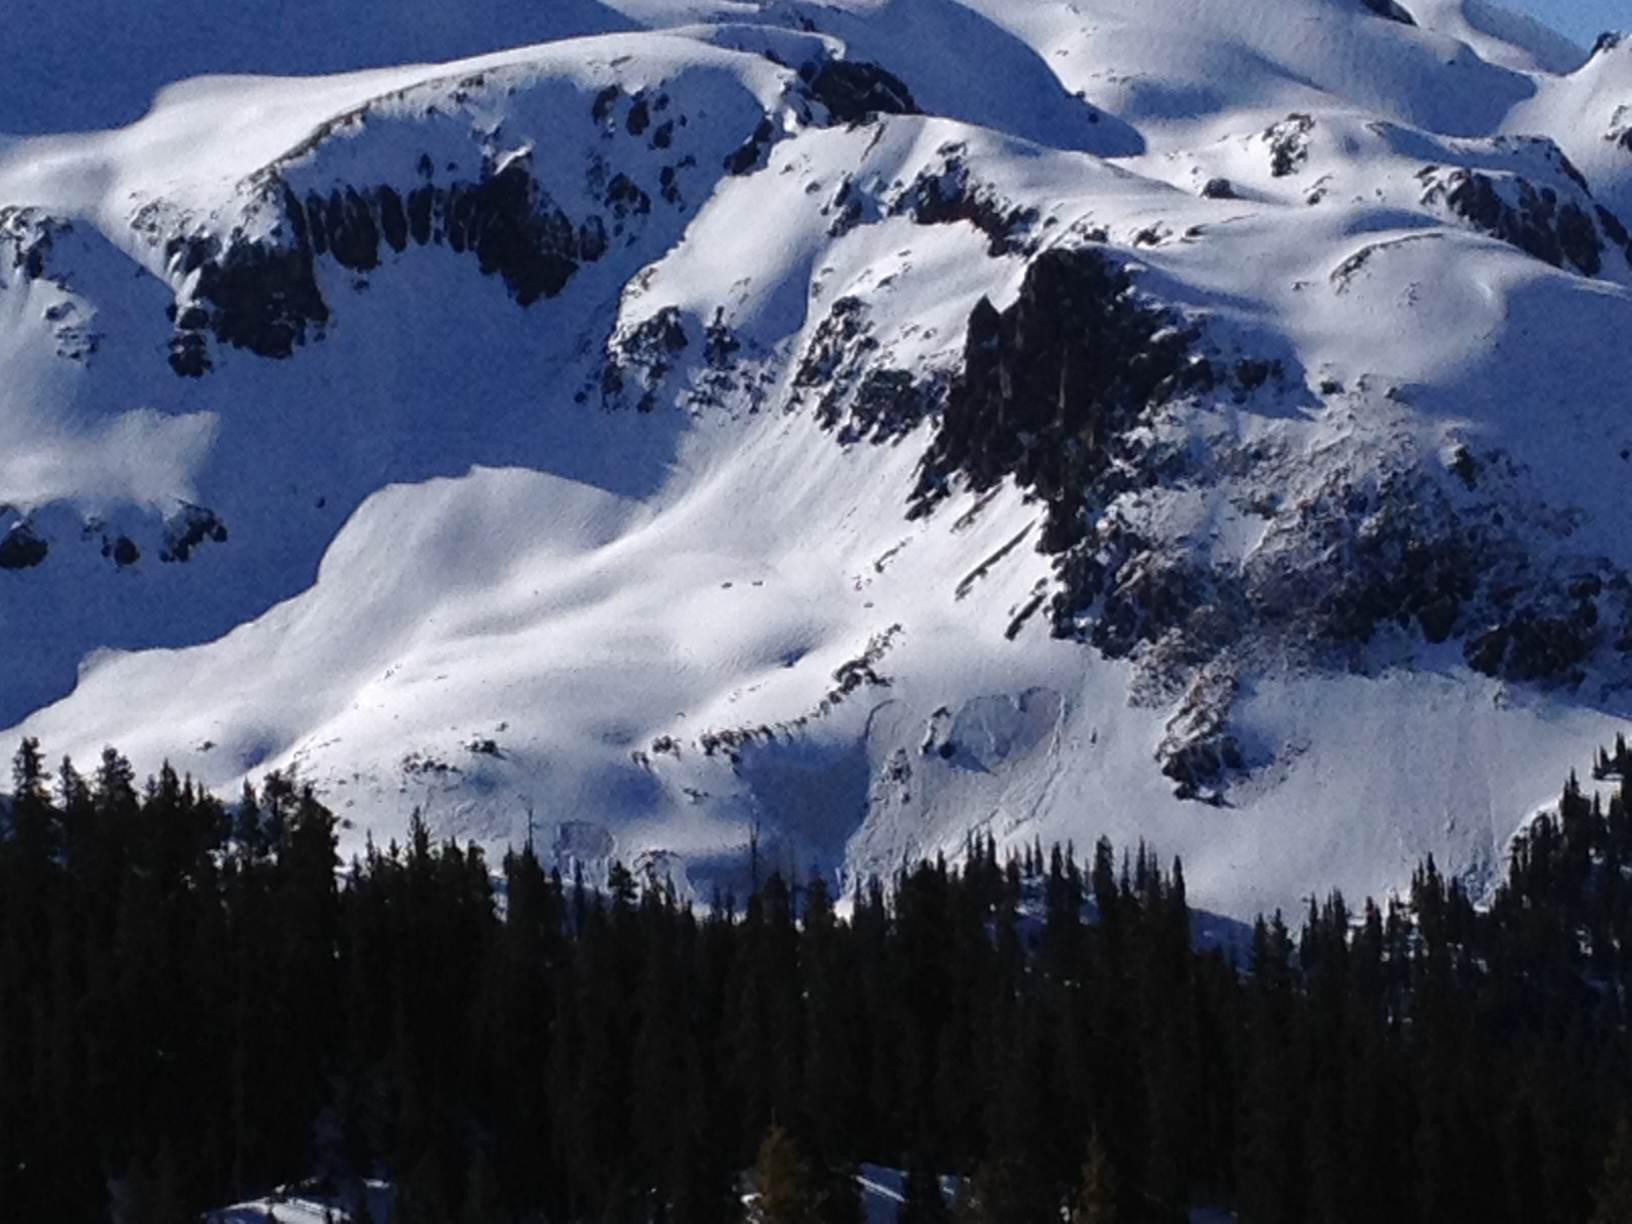 SBB on May 12, 2016.  A number of shallow wet slab avalanches ran Thursday, May 12, on the near-surface D5/D6 dust layer.  This elevation band, treeline and slightly above, likely received rain during the precipitation events the first part of last week.